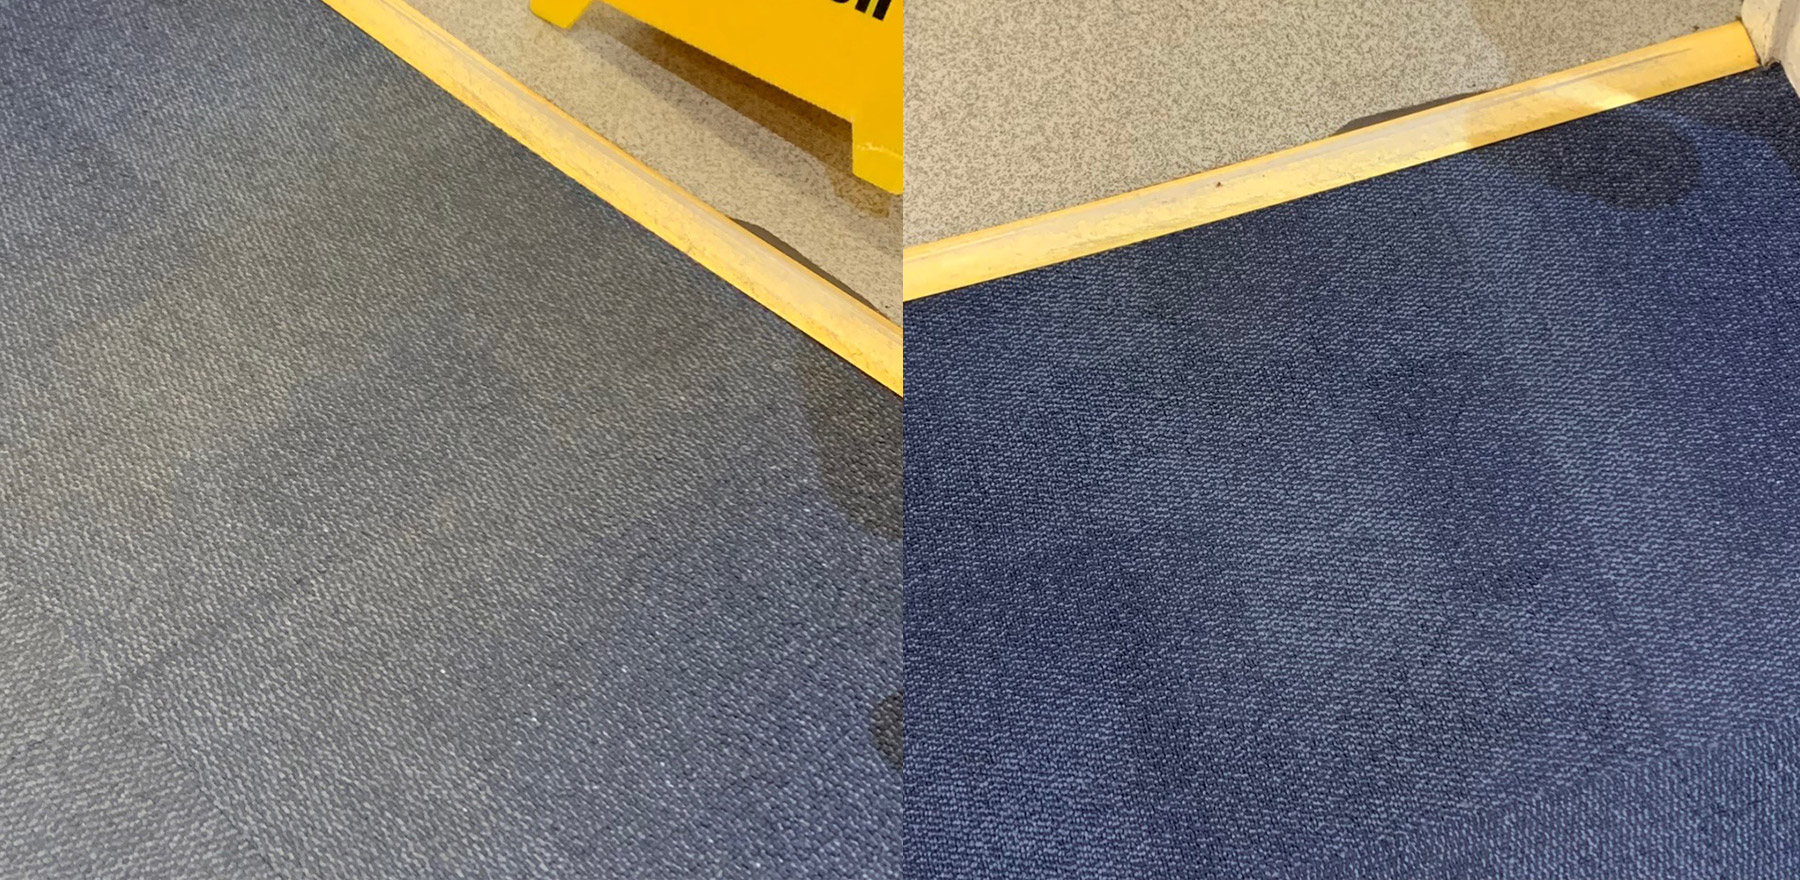 Storm carpet cleaning